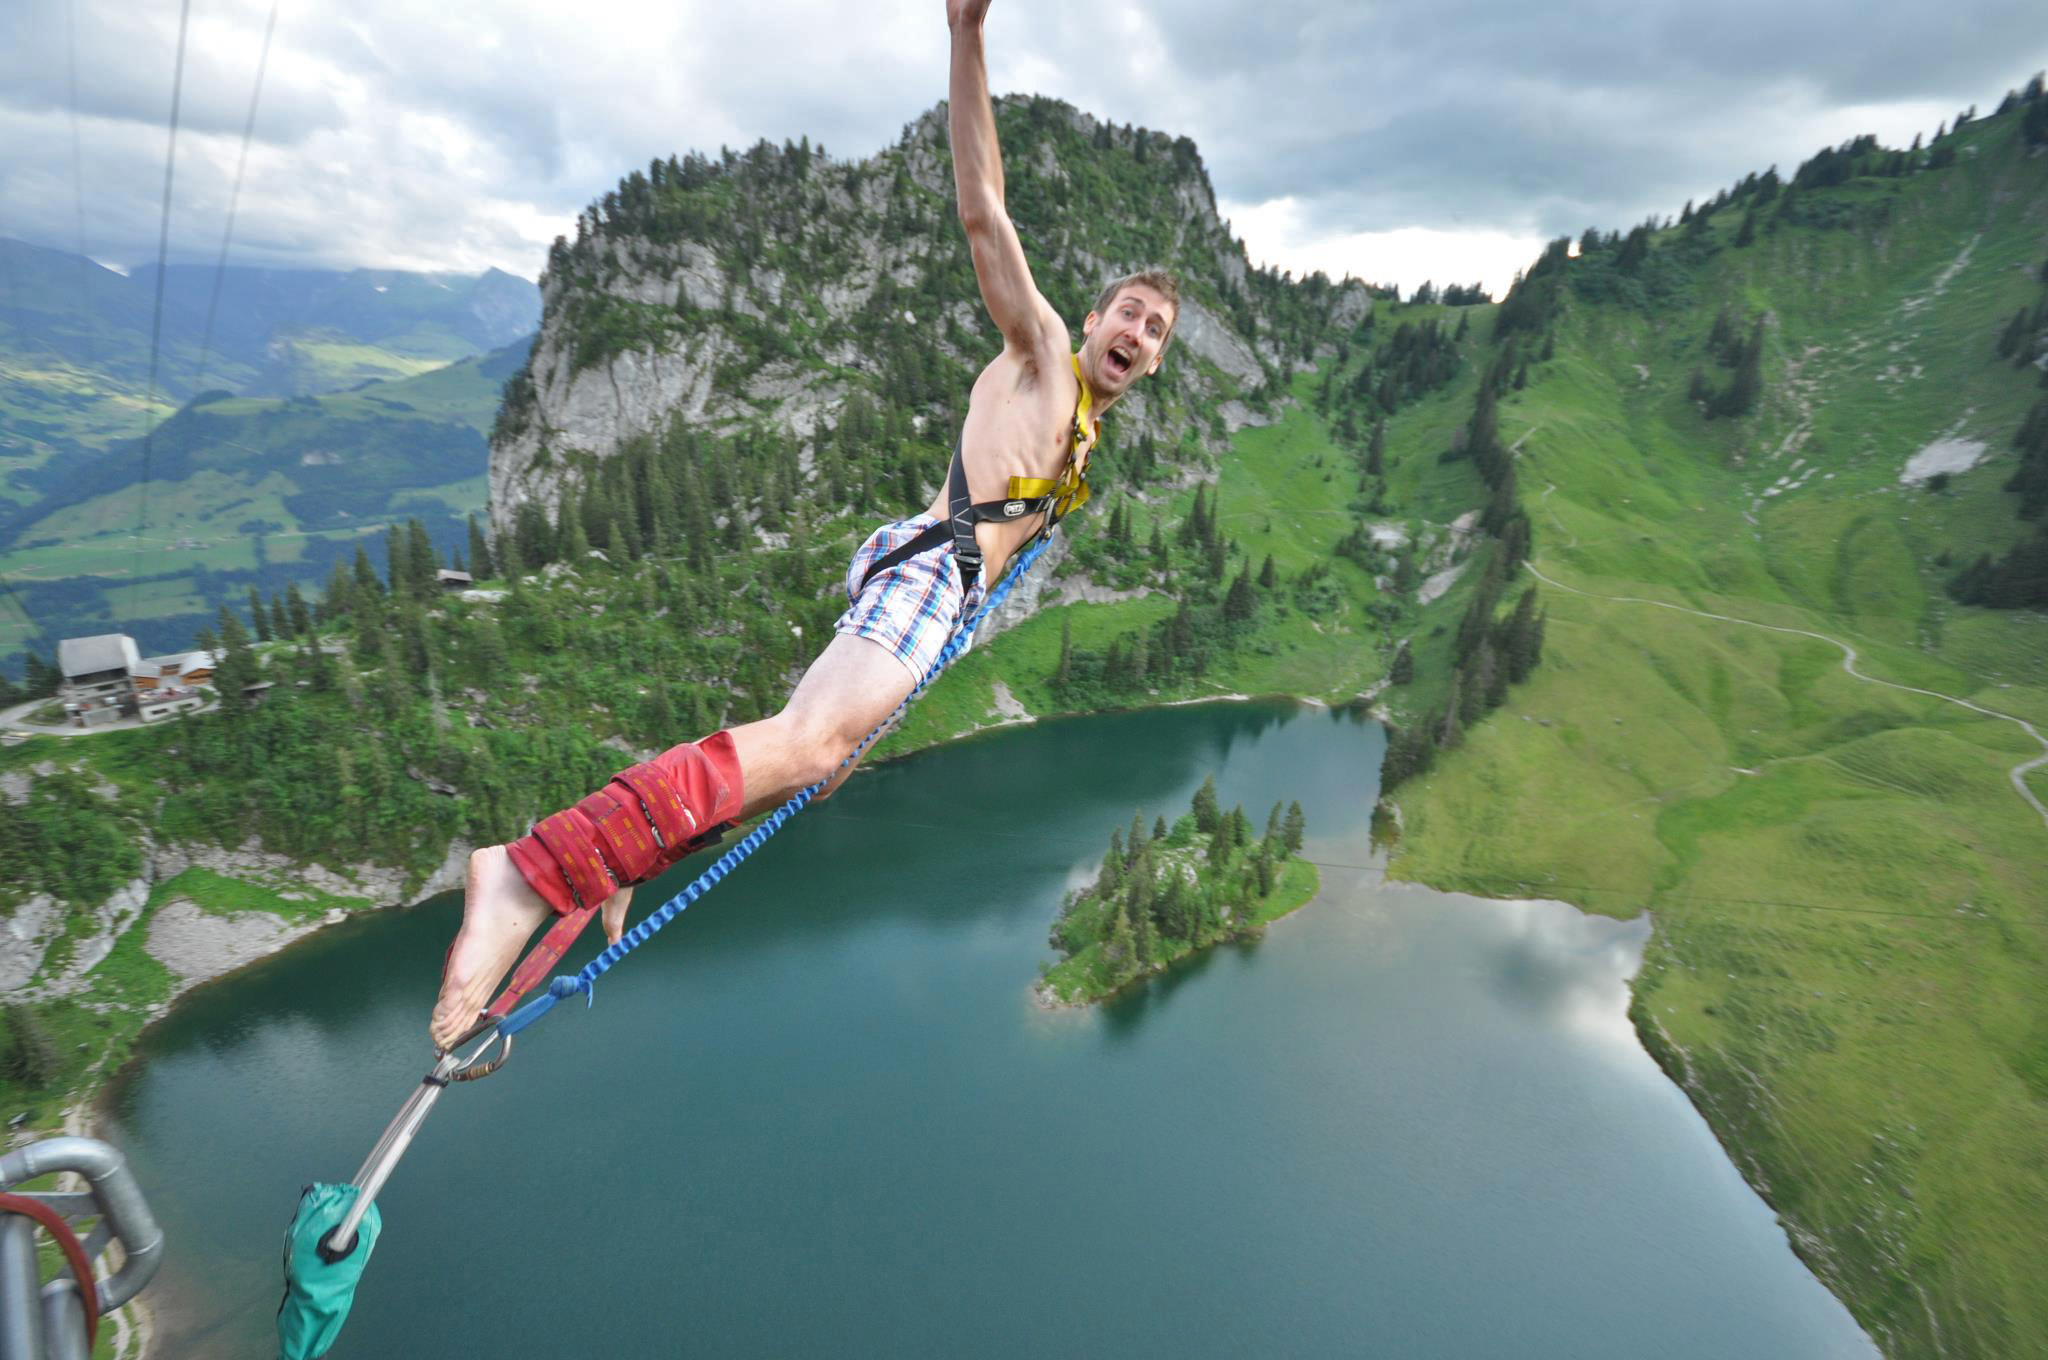 2048x1360 > Bungee Jump Wallpapers